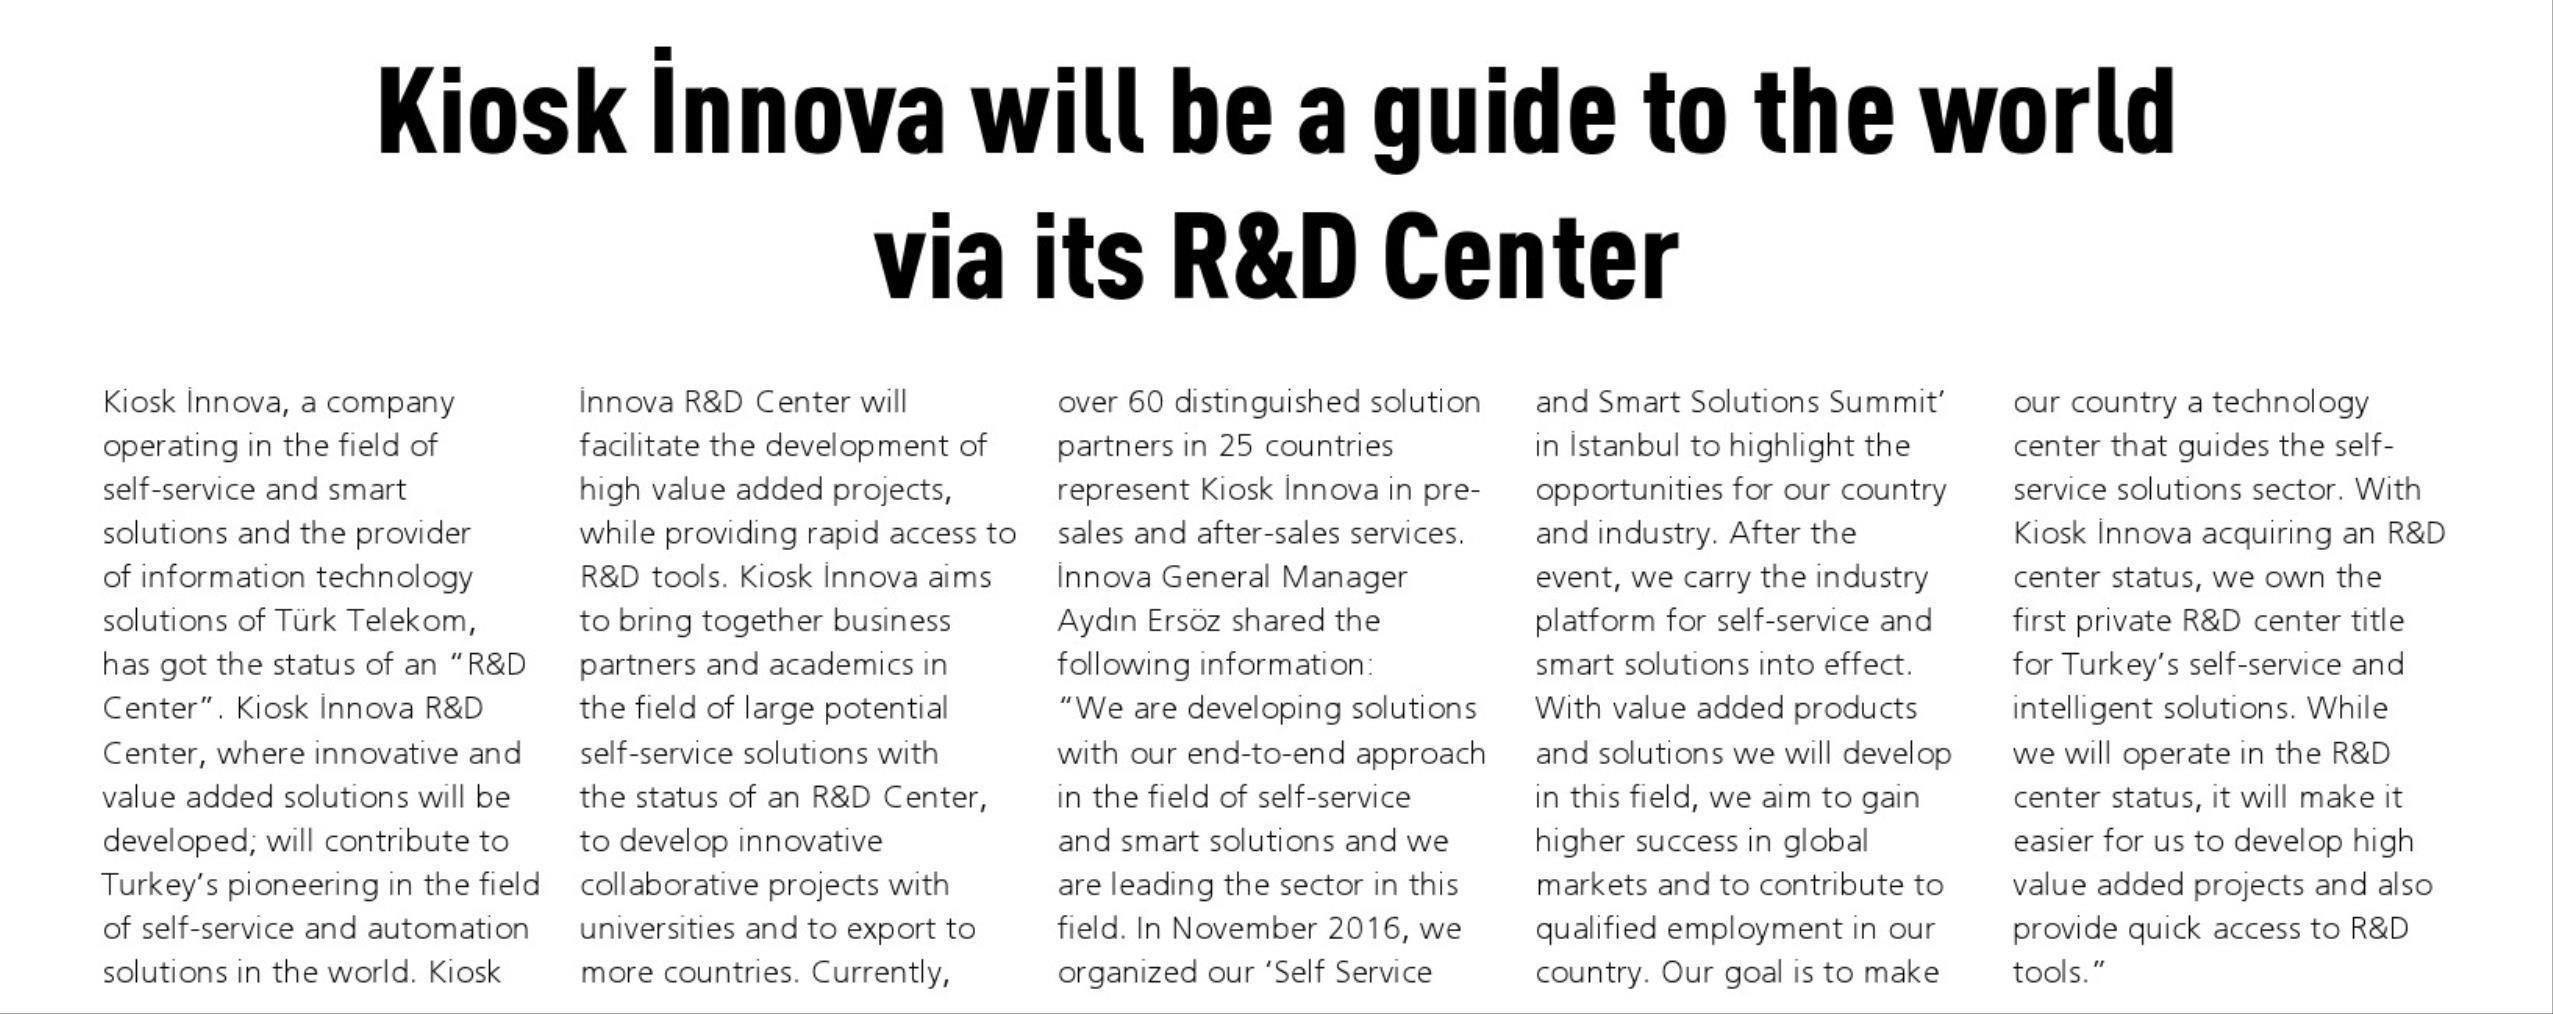 Kiosk İnnova Will Be A Guide To The World Via Its R&D Center